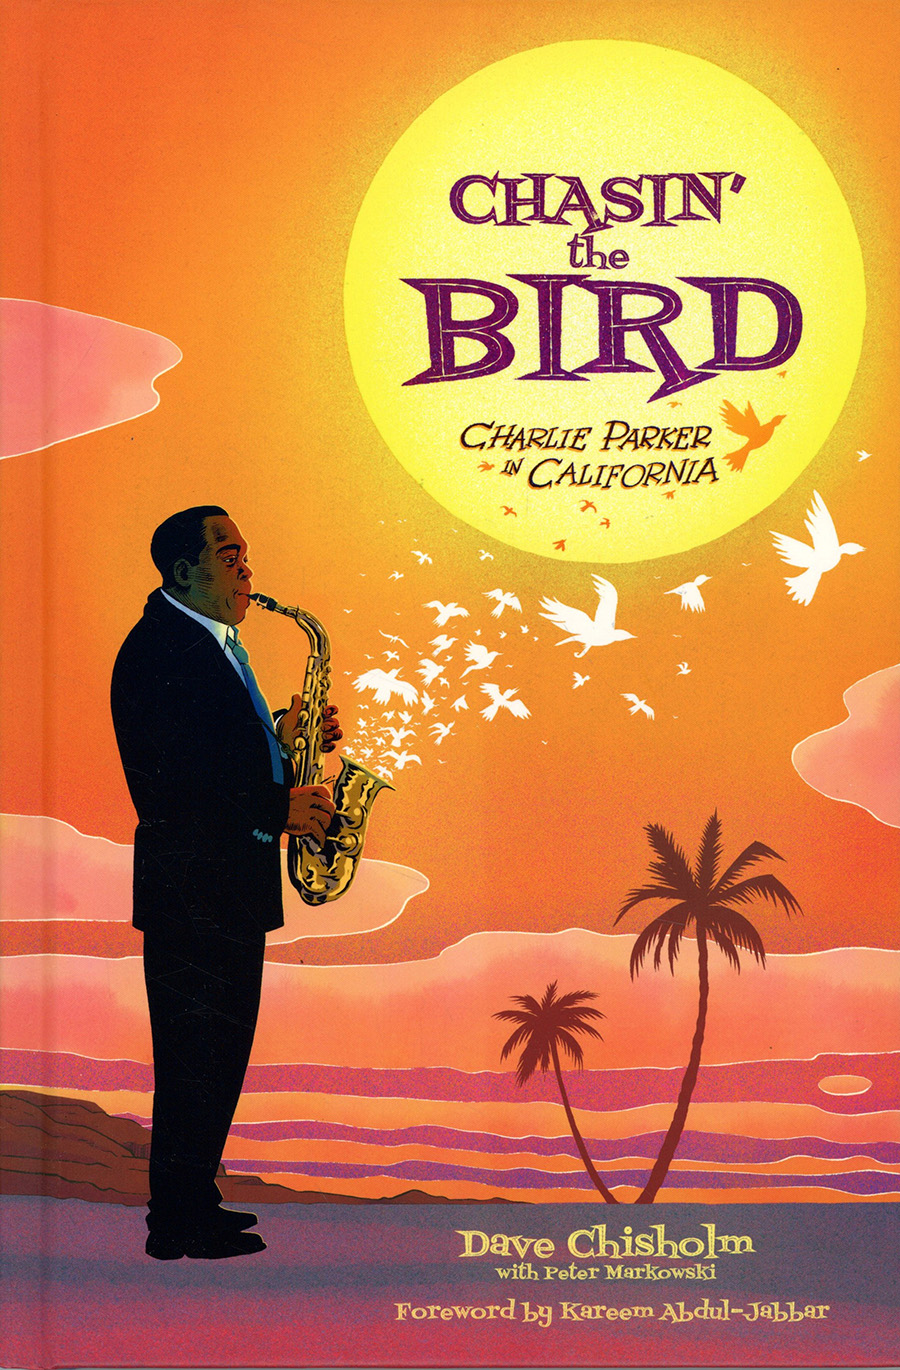 Chasing The Bird Charlie Parker In California HC